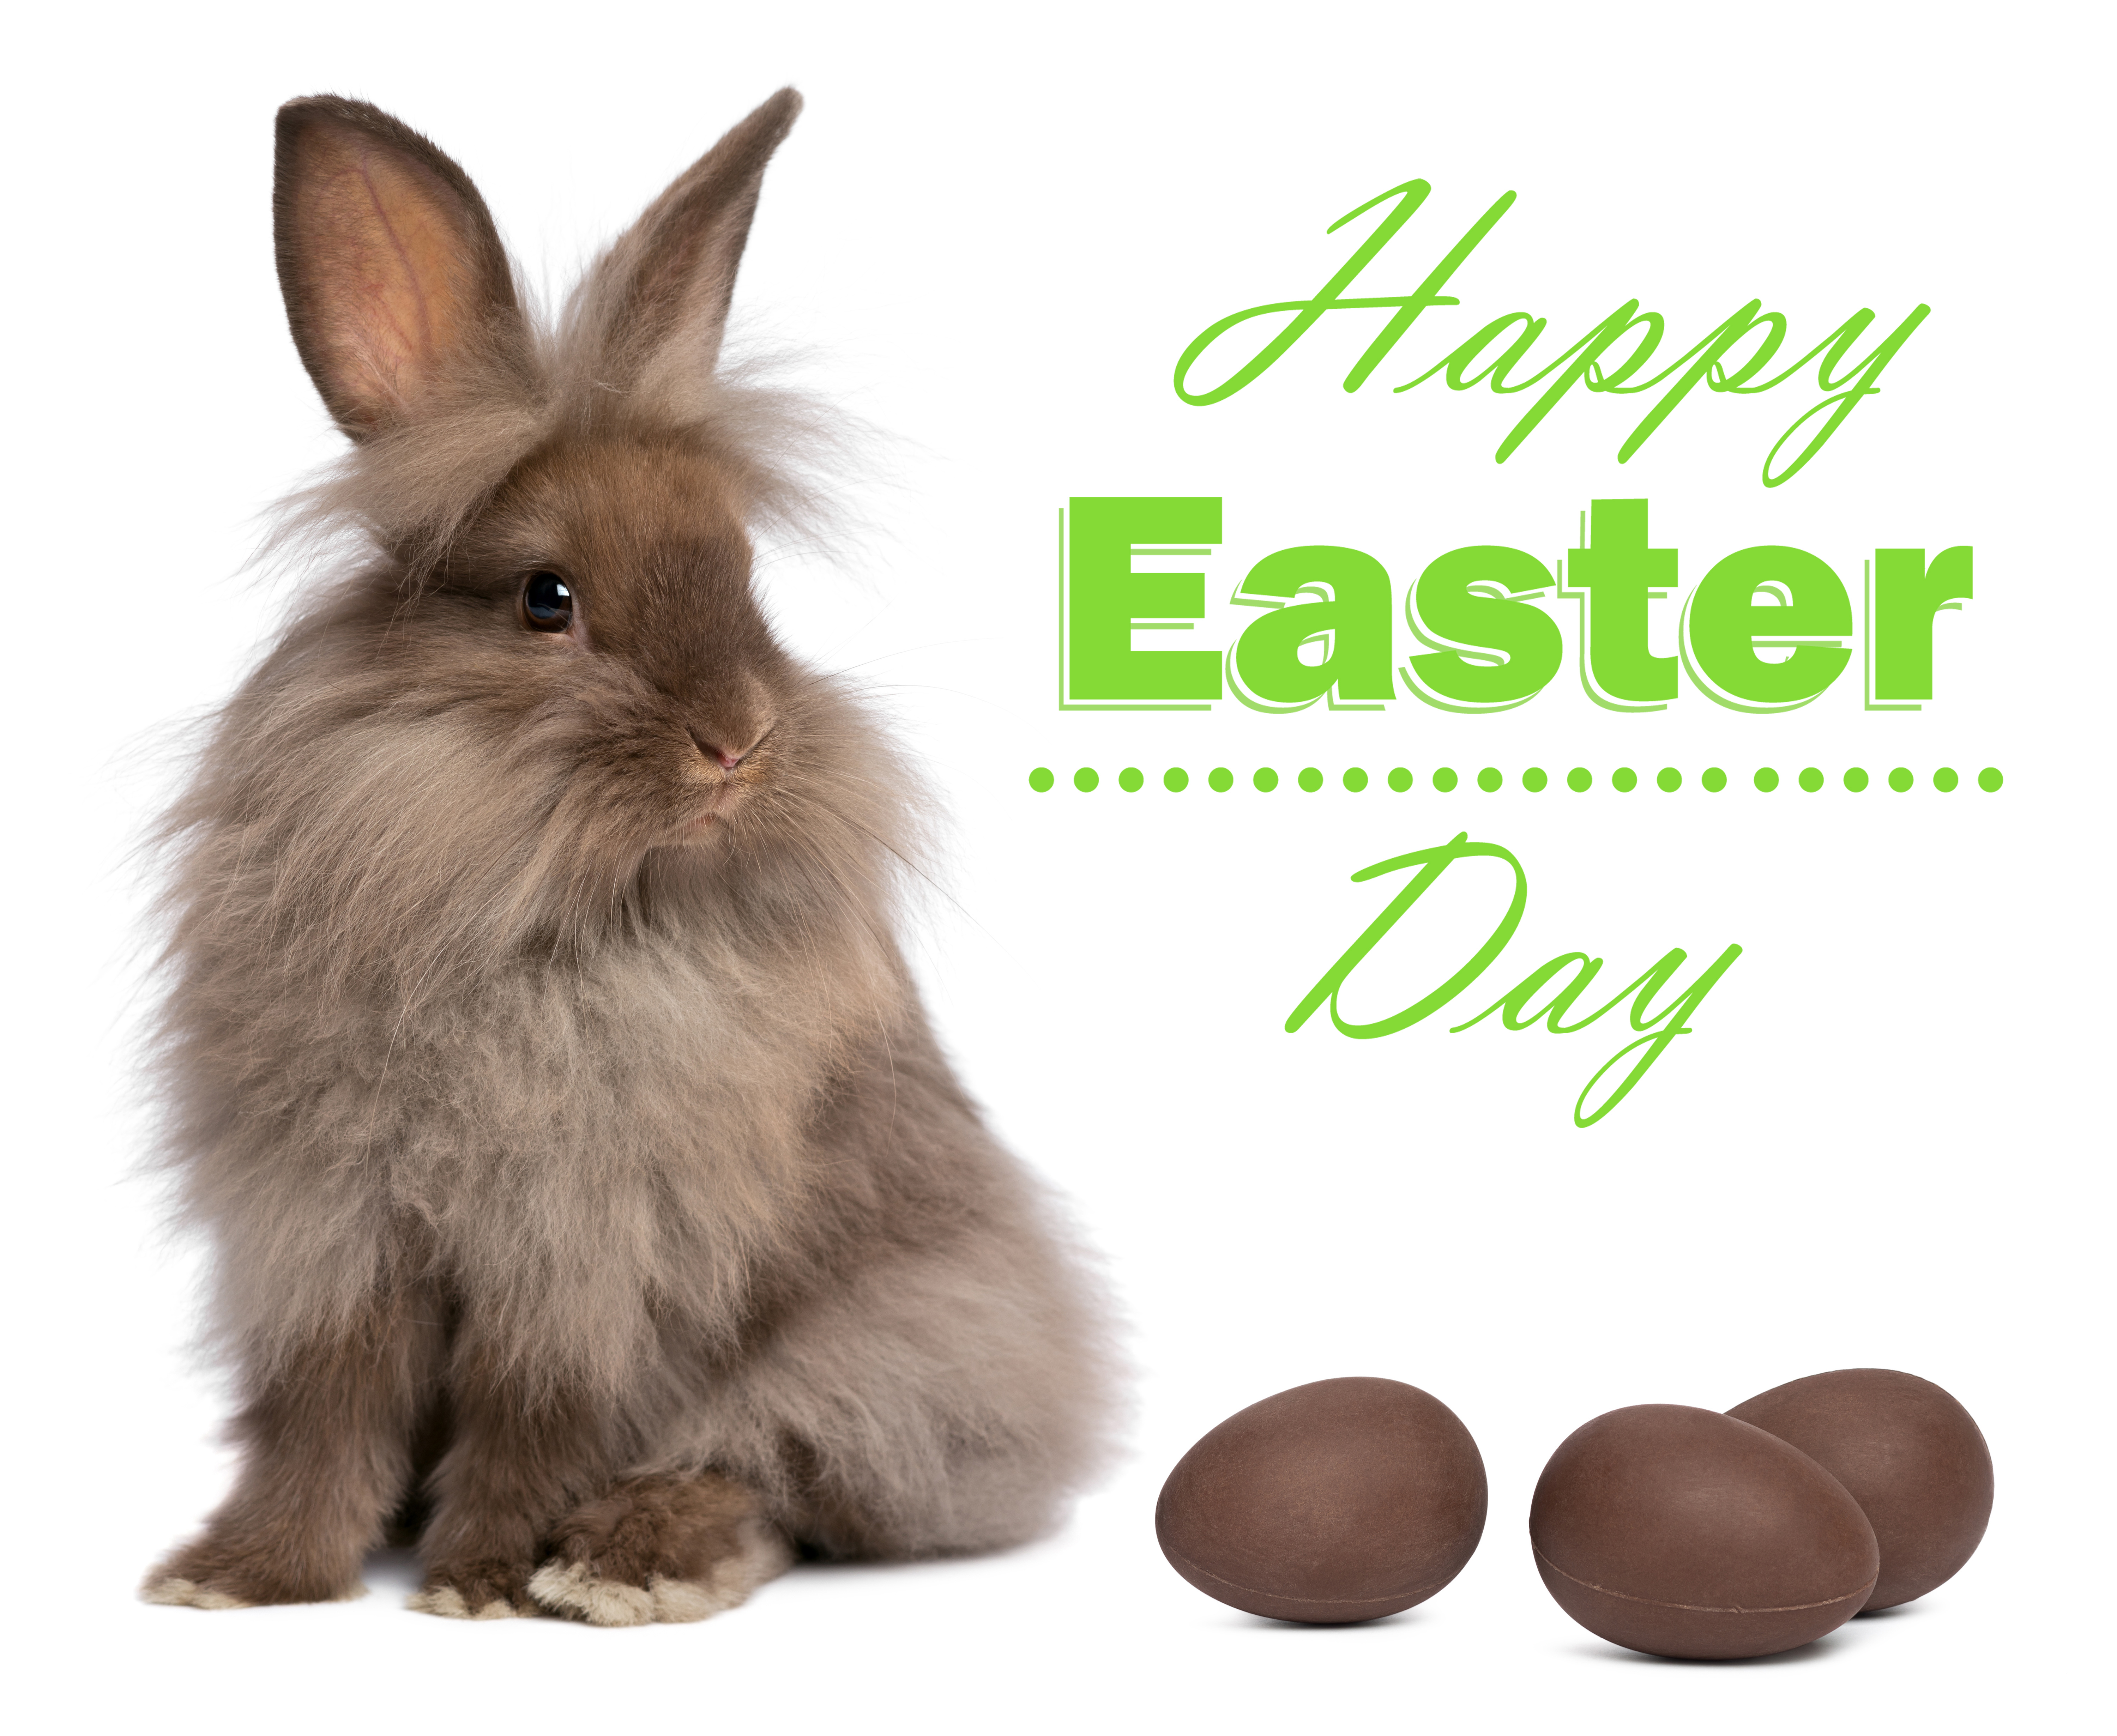 Cute Easter Bunny with Chocolate Eggs Background.